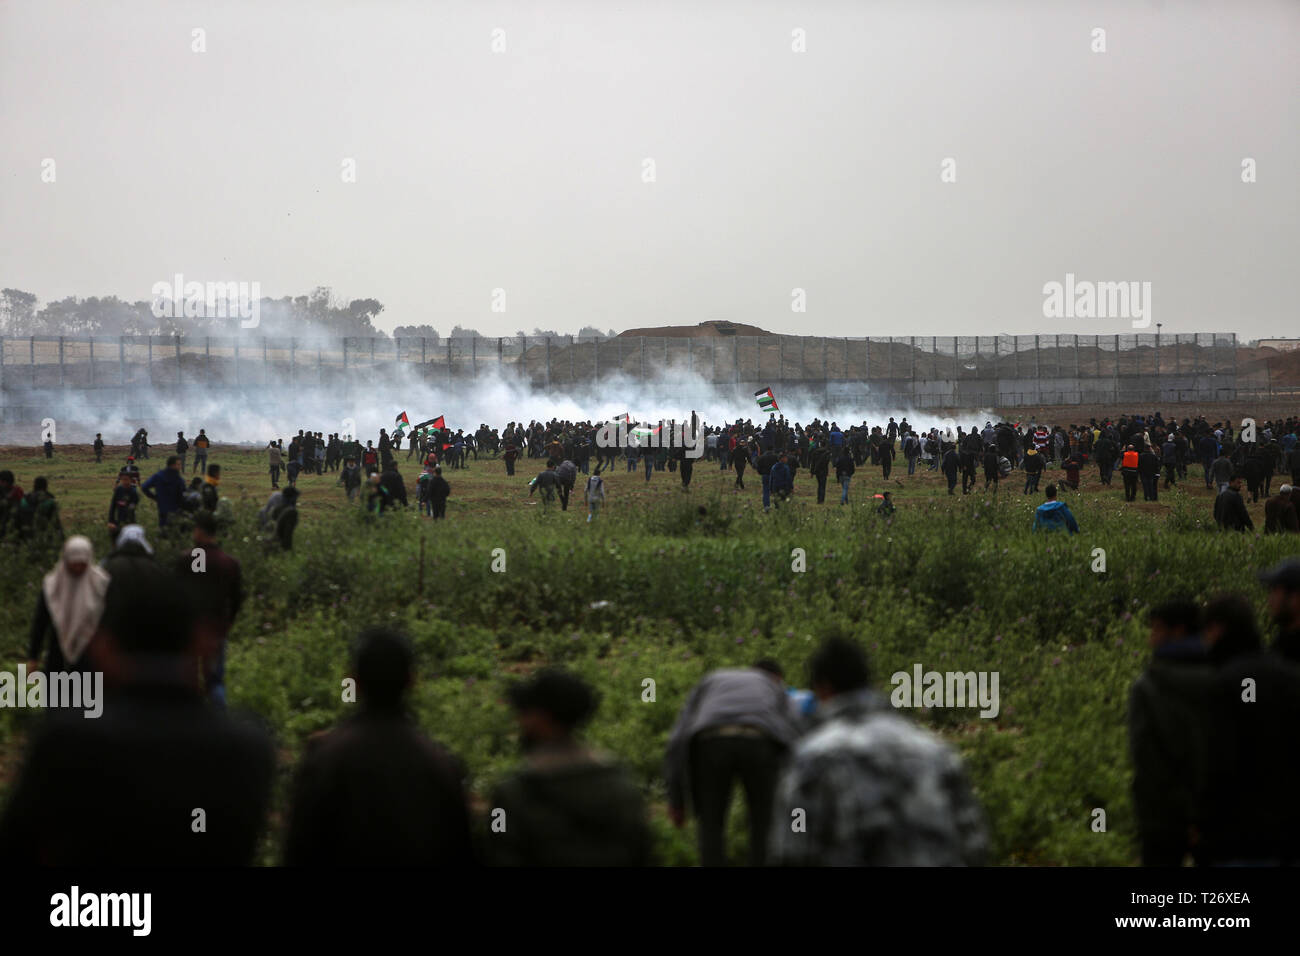 Gaza. 30th Mar, 2019. Palestinian protesters clash with Israeli troops on the Gaza-Israel border, east of Gaza City, March 30, 2019. Thousands of Palestinians marked on Saturday the Palestinian Land Day and the first anniversary of the Palestinian Great March of Return. Credit: Stringer/Xinhua/Alamy Live News - Stock Image